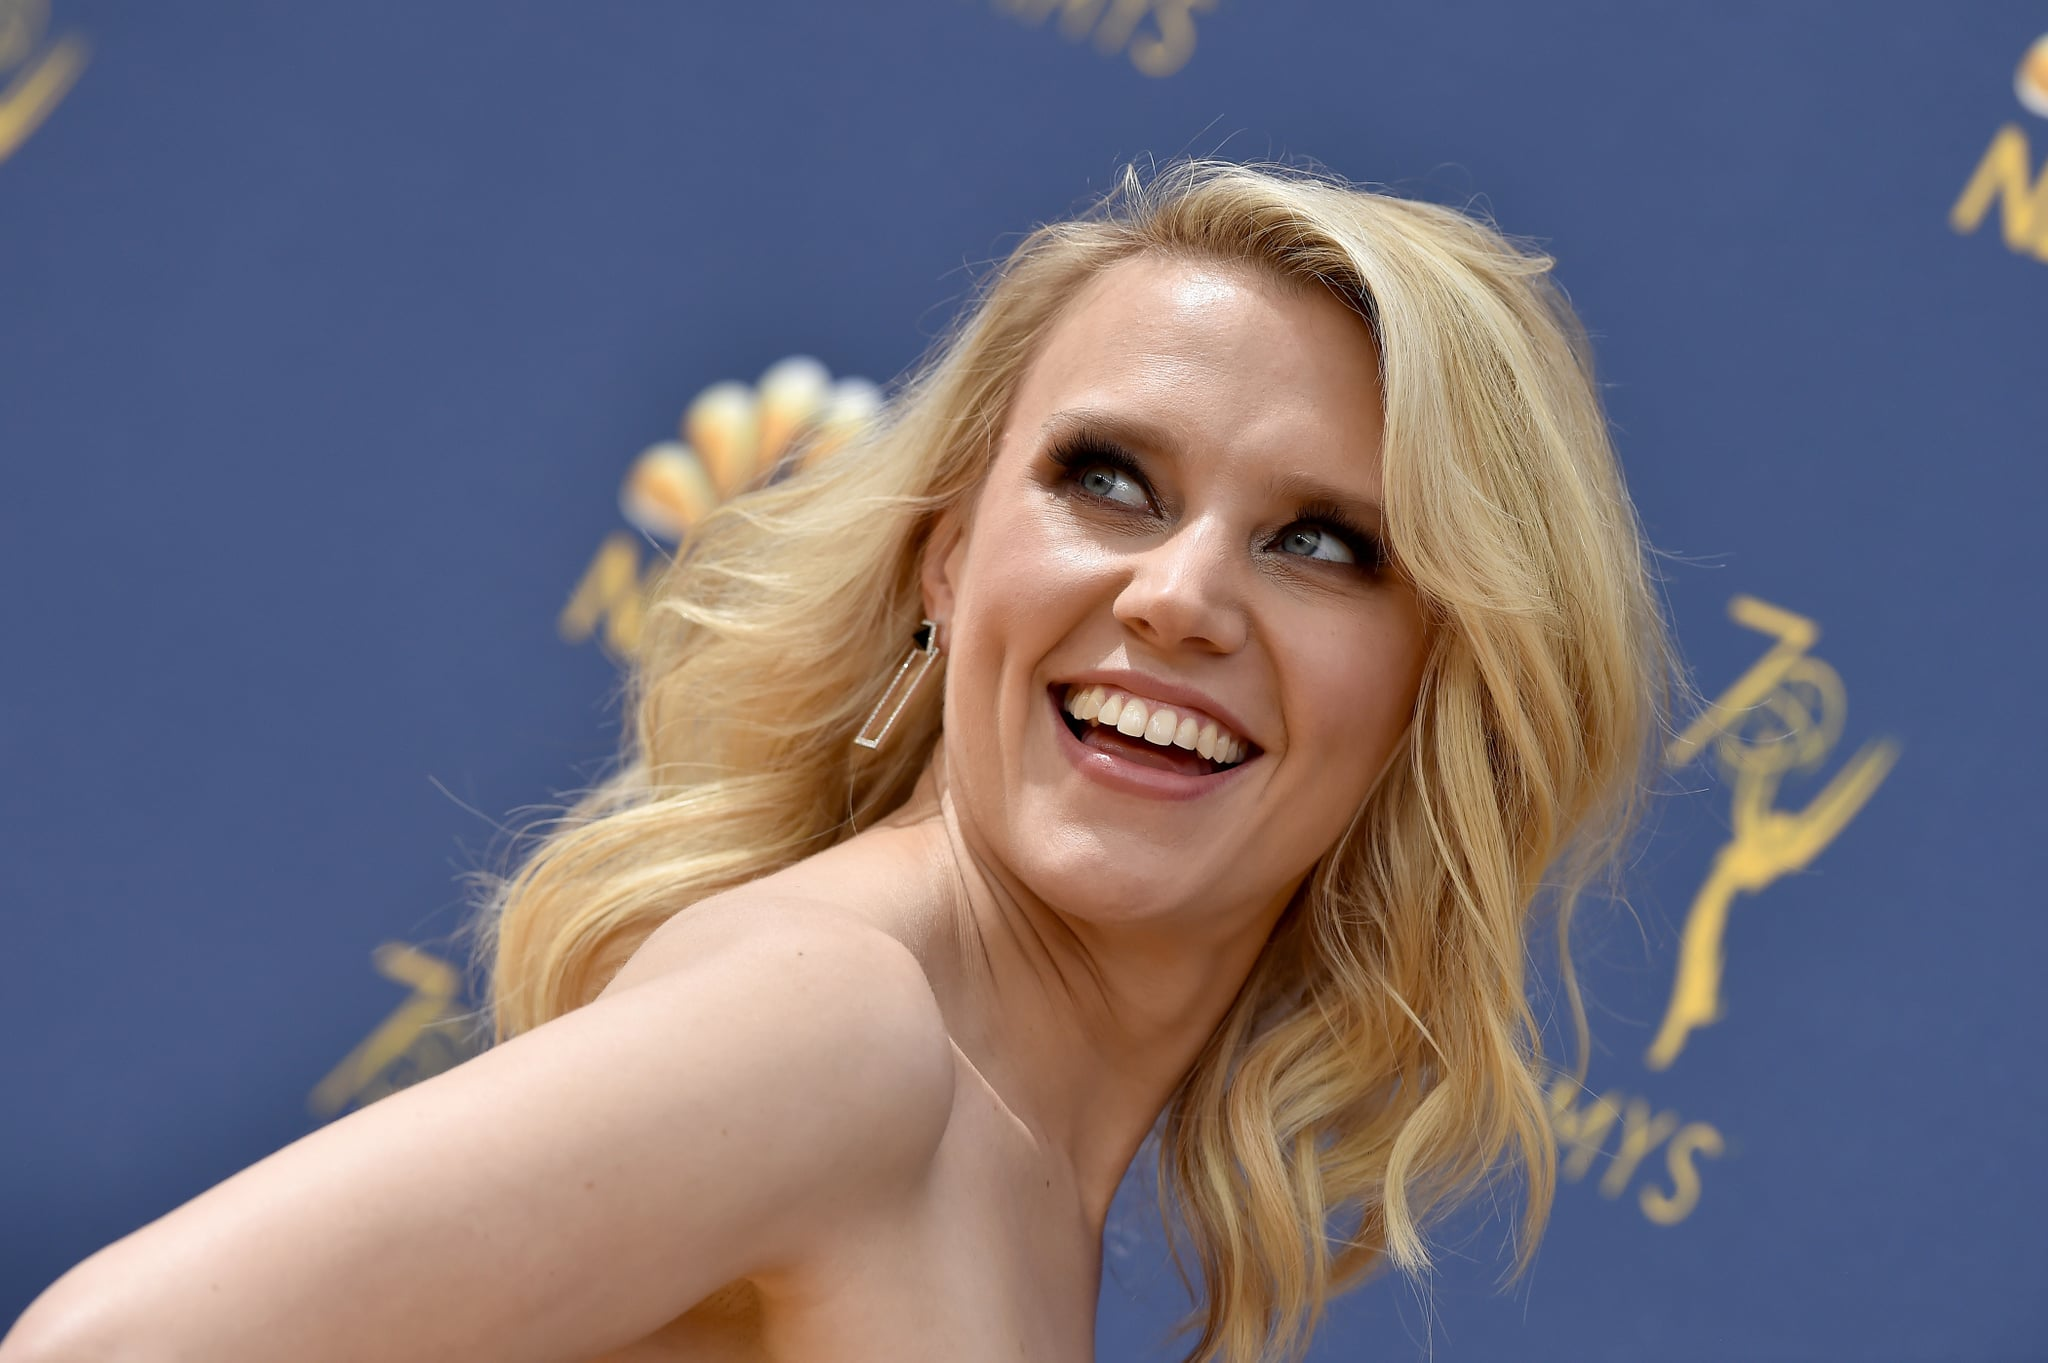 LOS ANGELES, CA - SEPTEMBER 17:  Kate McKinnon attends the 70th Emmy Awards at Microsoft Theater on September 17, 2018 in Los Angeles, California.  (Photo by Axelle/Bauer-Griffin/FilmMagic)